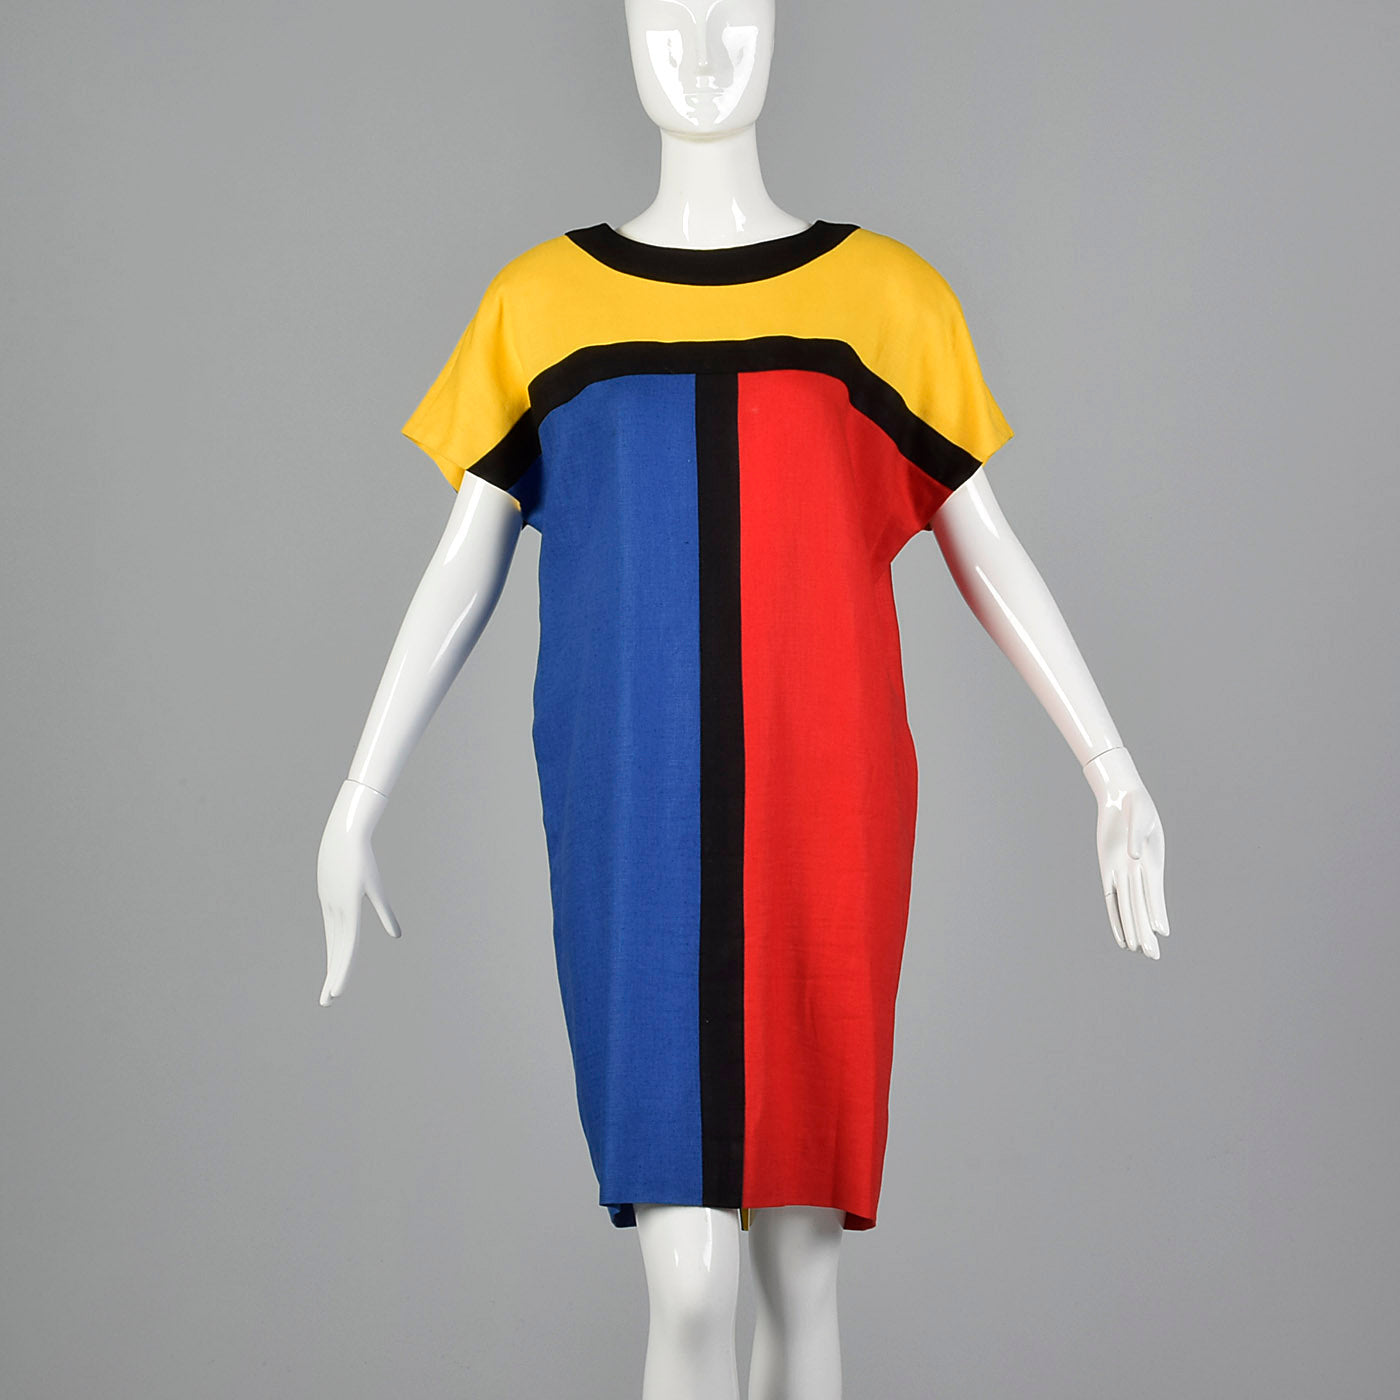 1980s Cocoon Dress in Mondrian Style